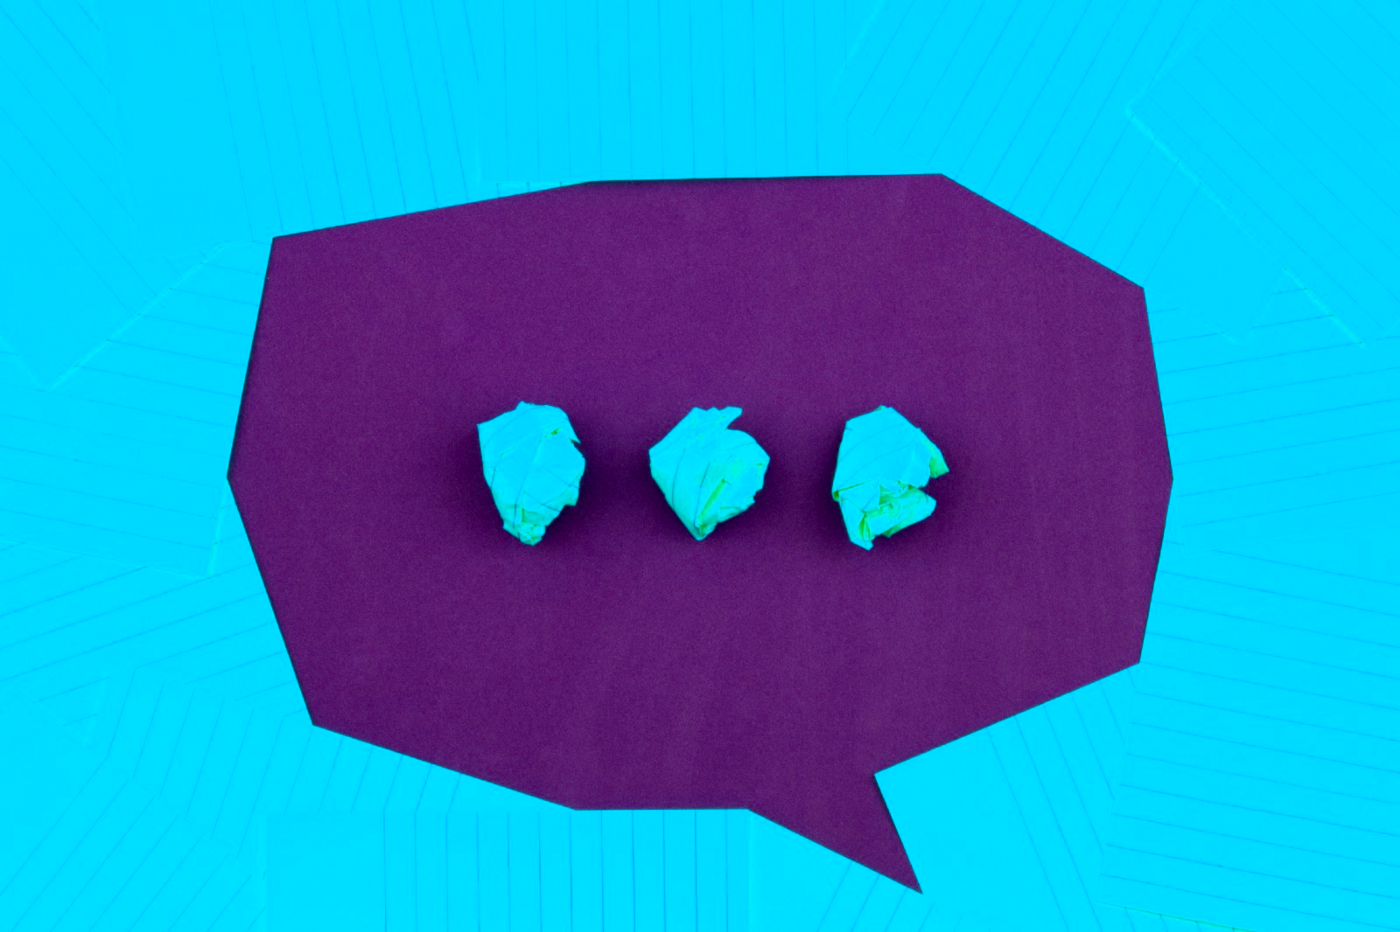 Crumpled pieces of paper in a speech bubble.